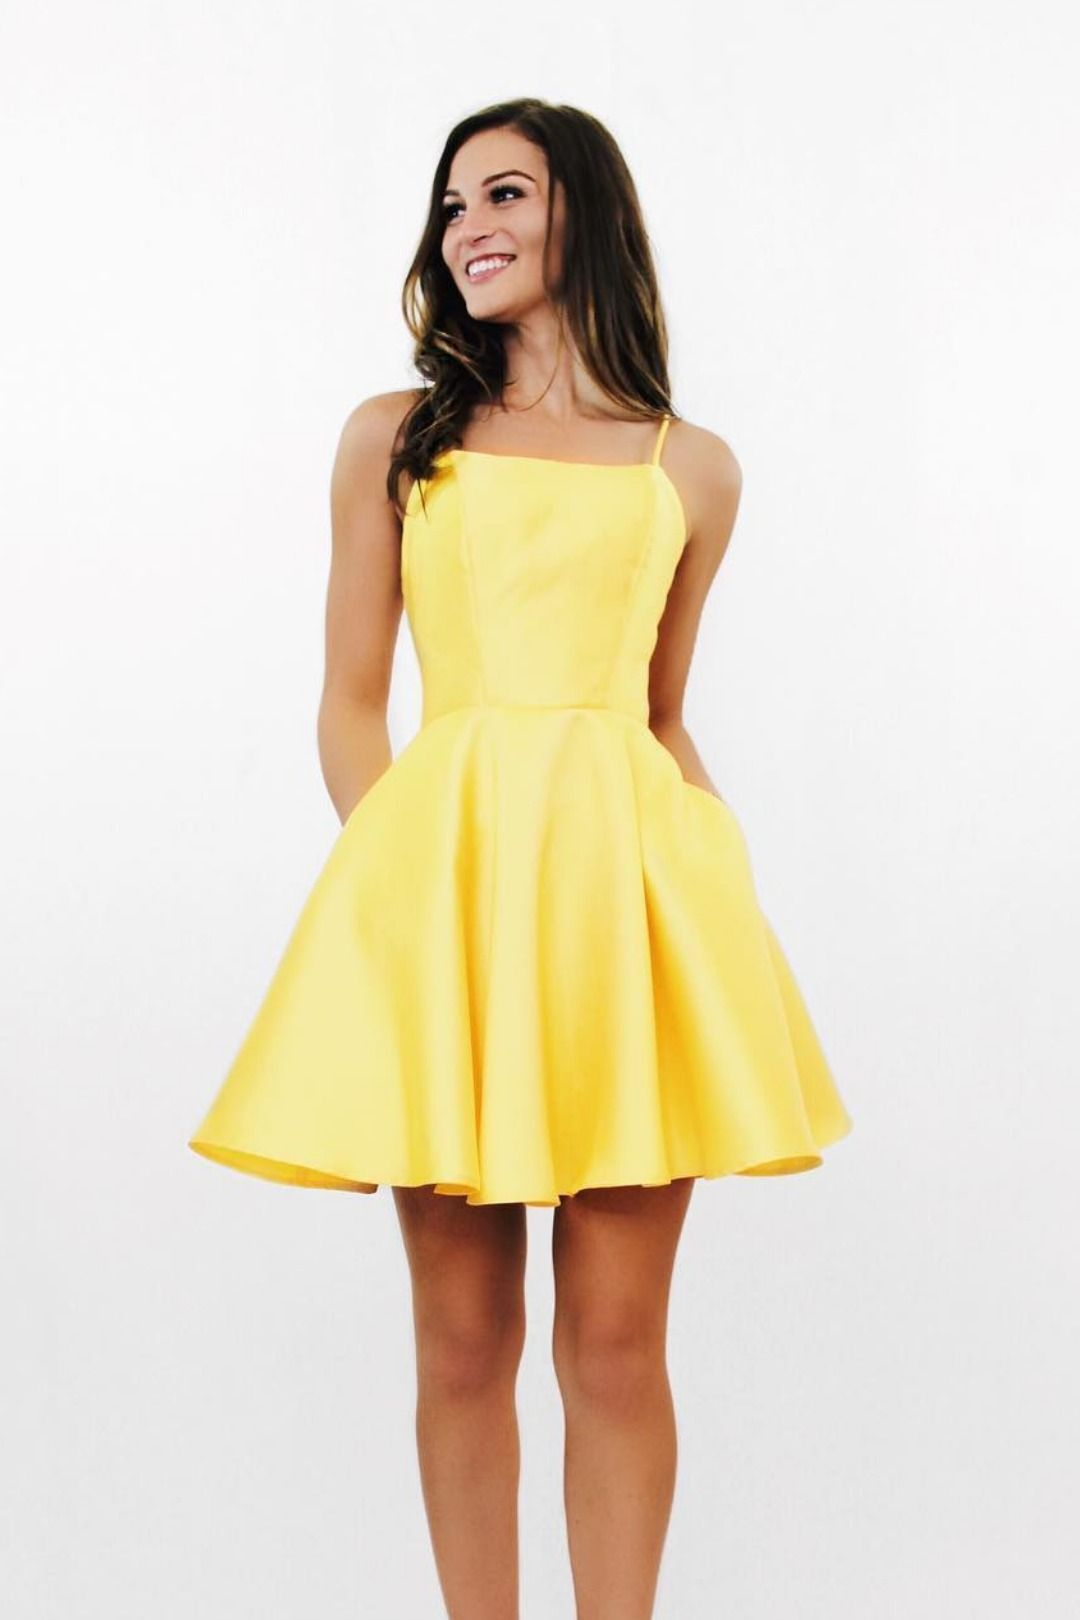 Short Yellow Homecoming Dress with Tie Back #schooldancedresses